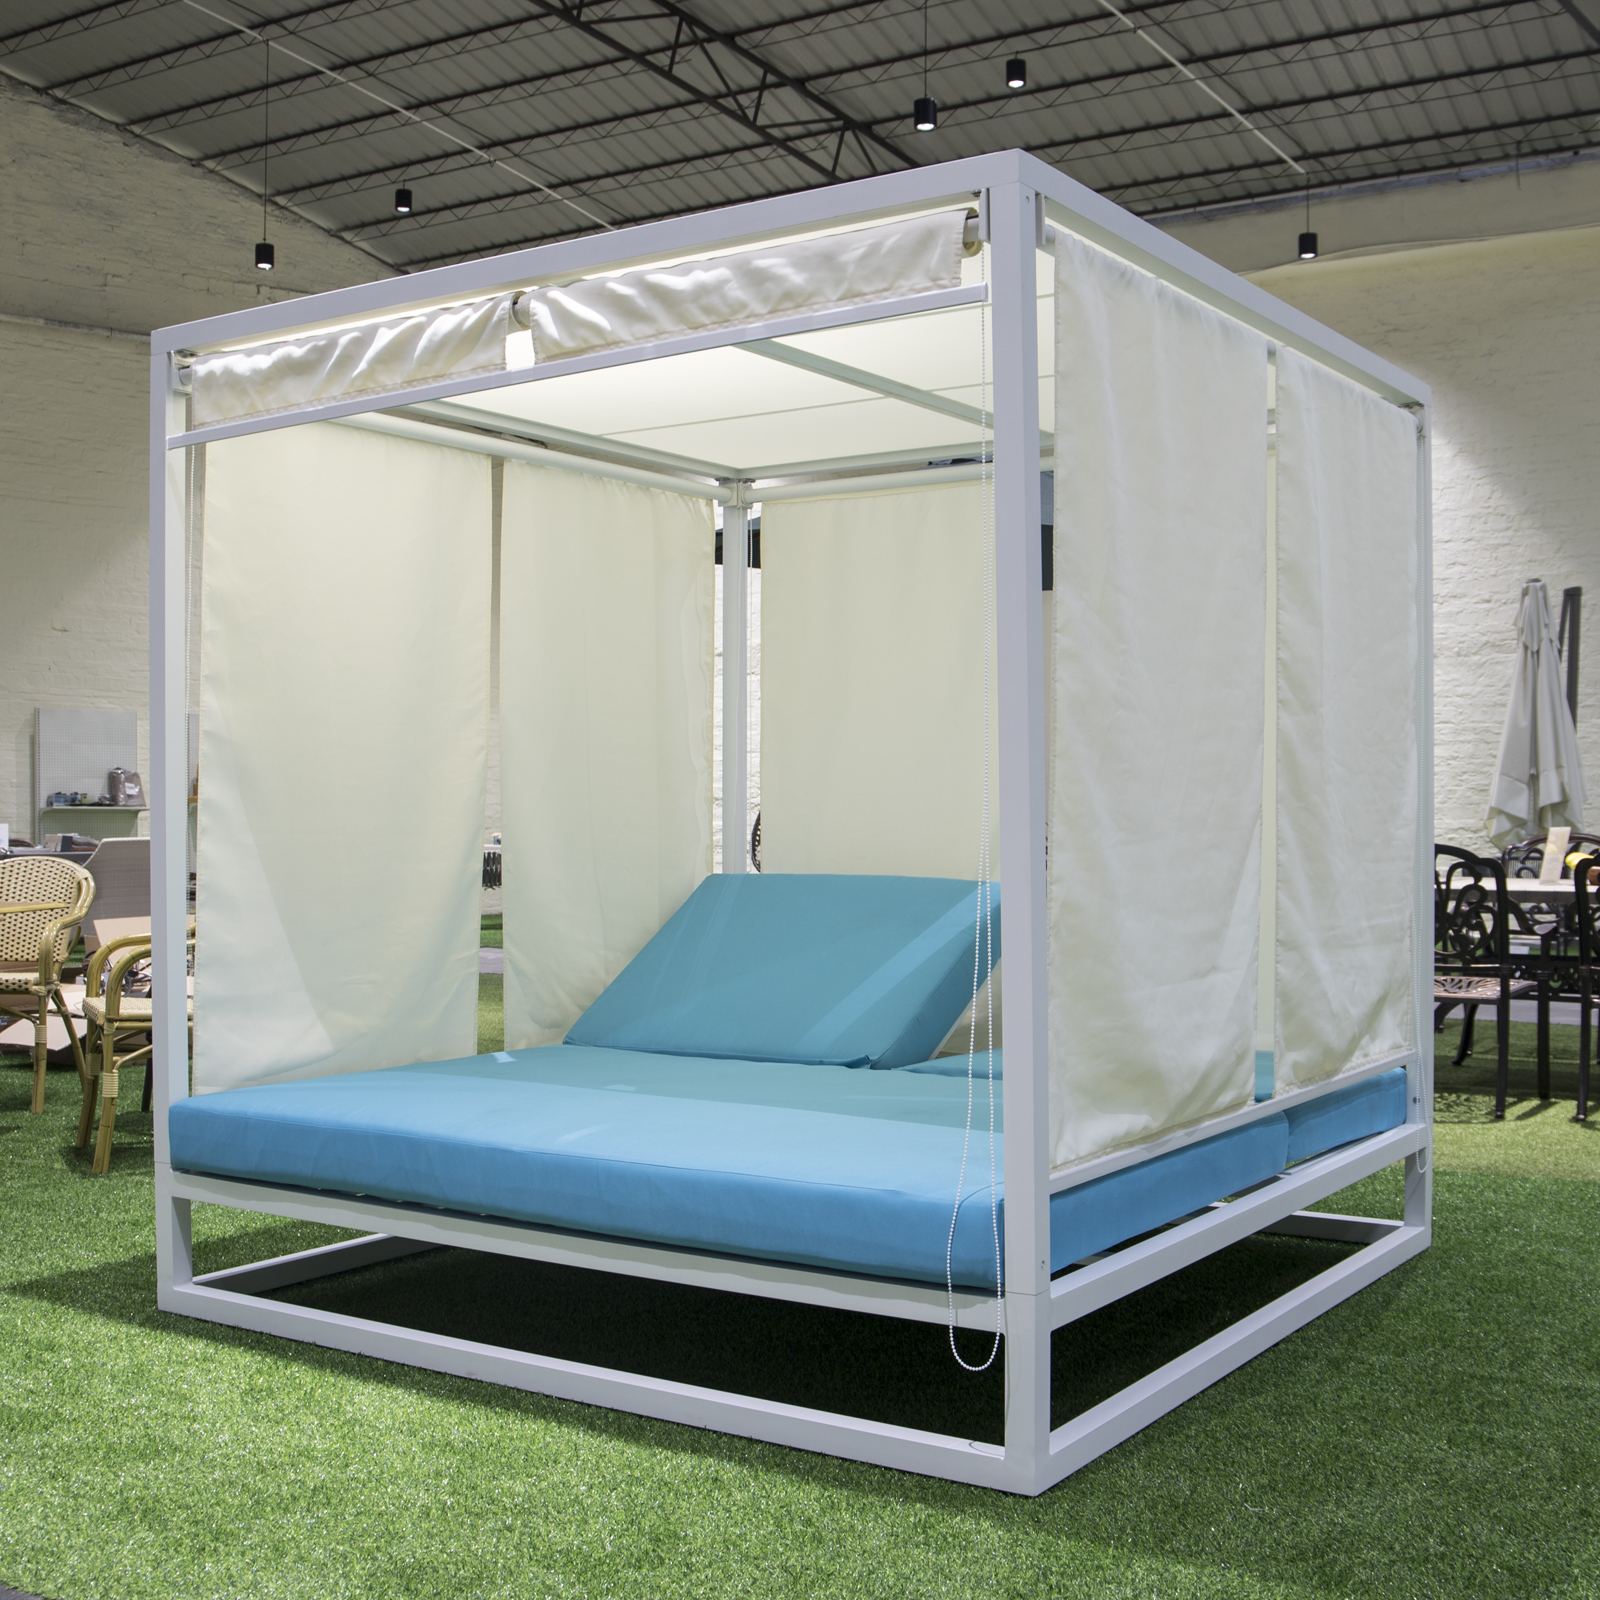 White aluminum outdoor patio furniture Canopy bed for hotel